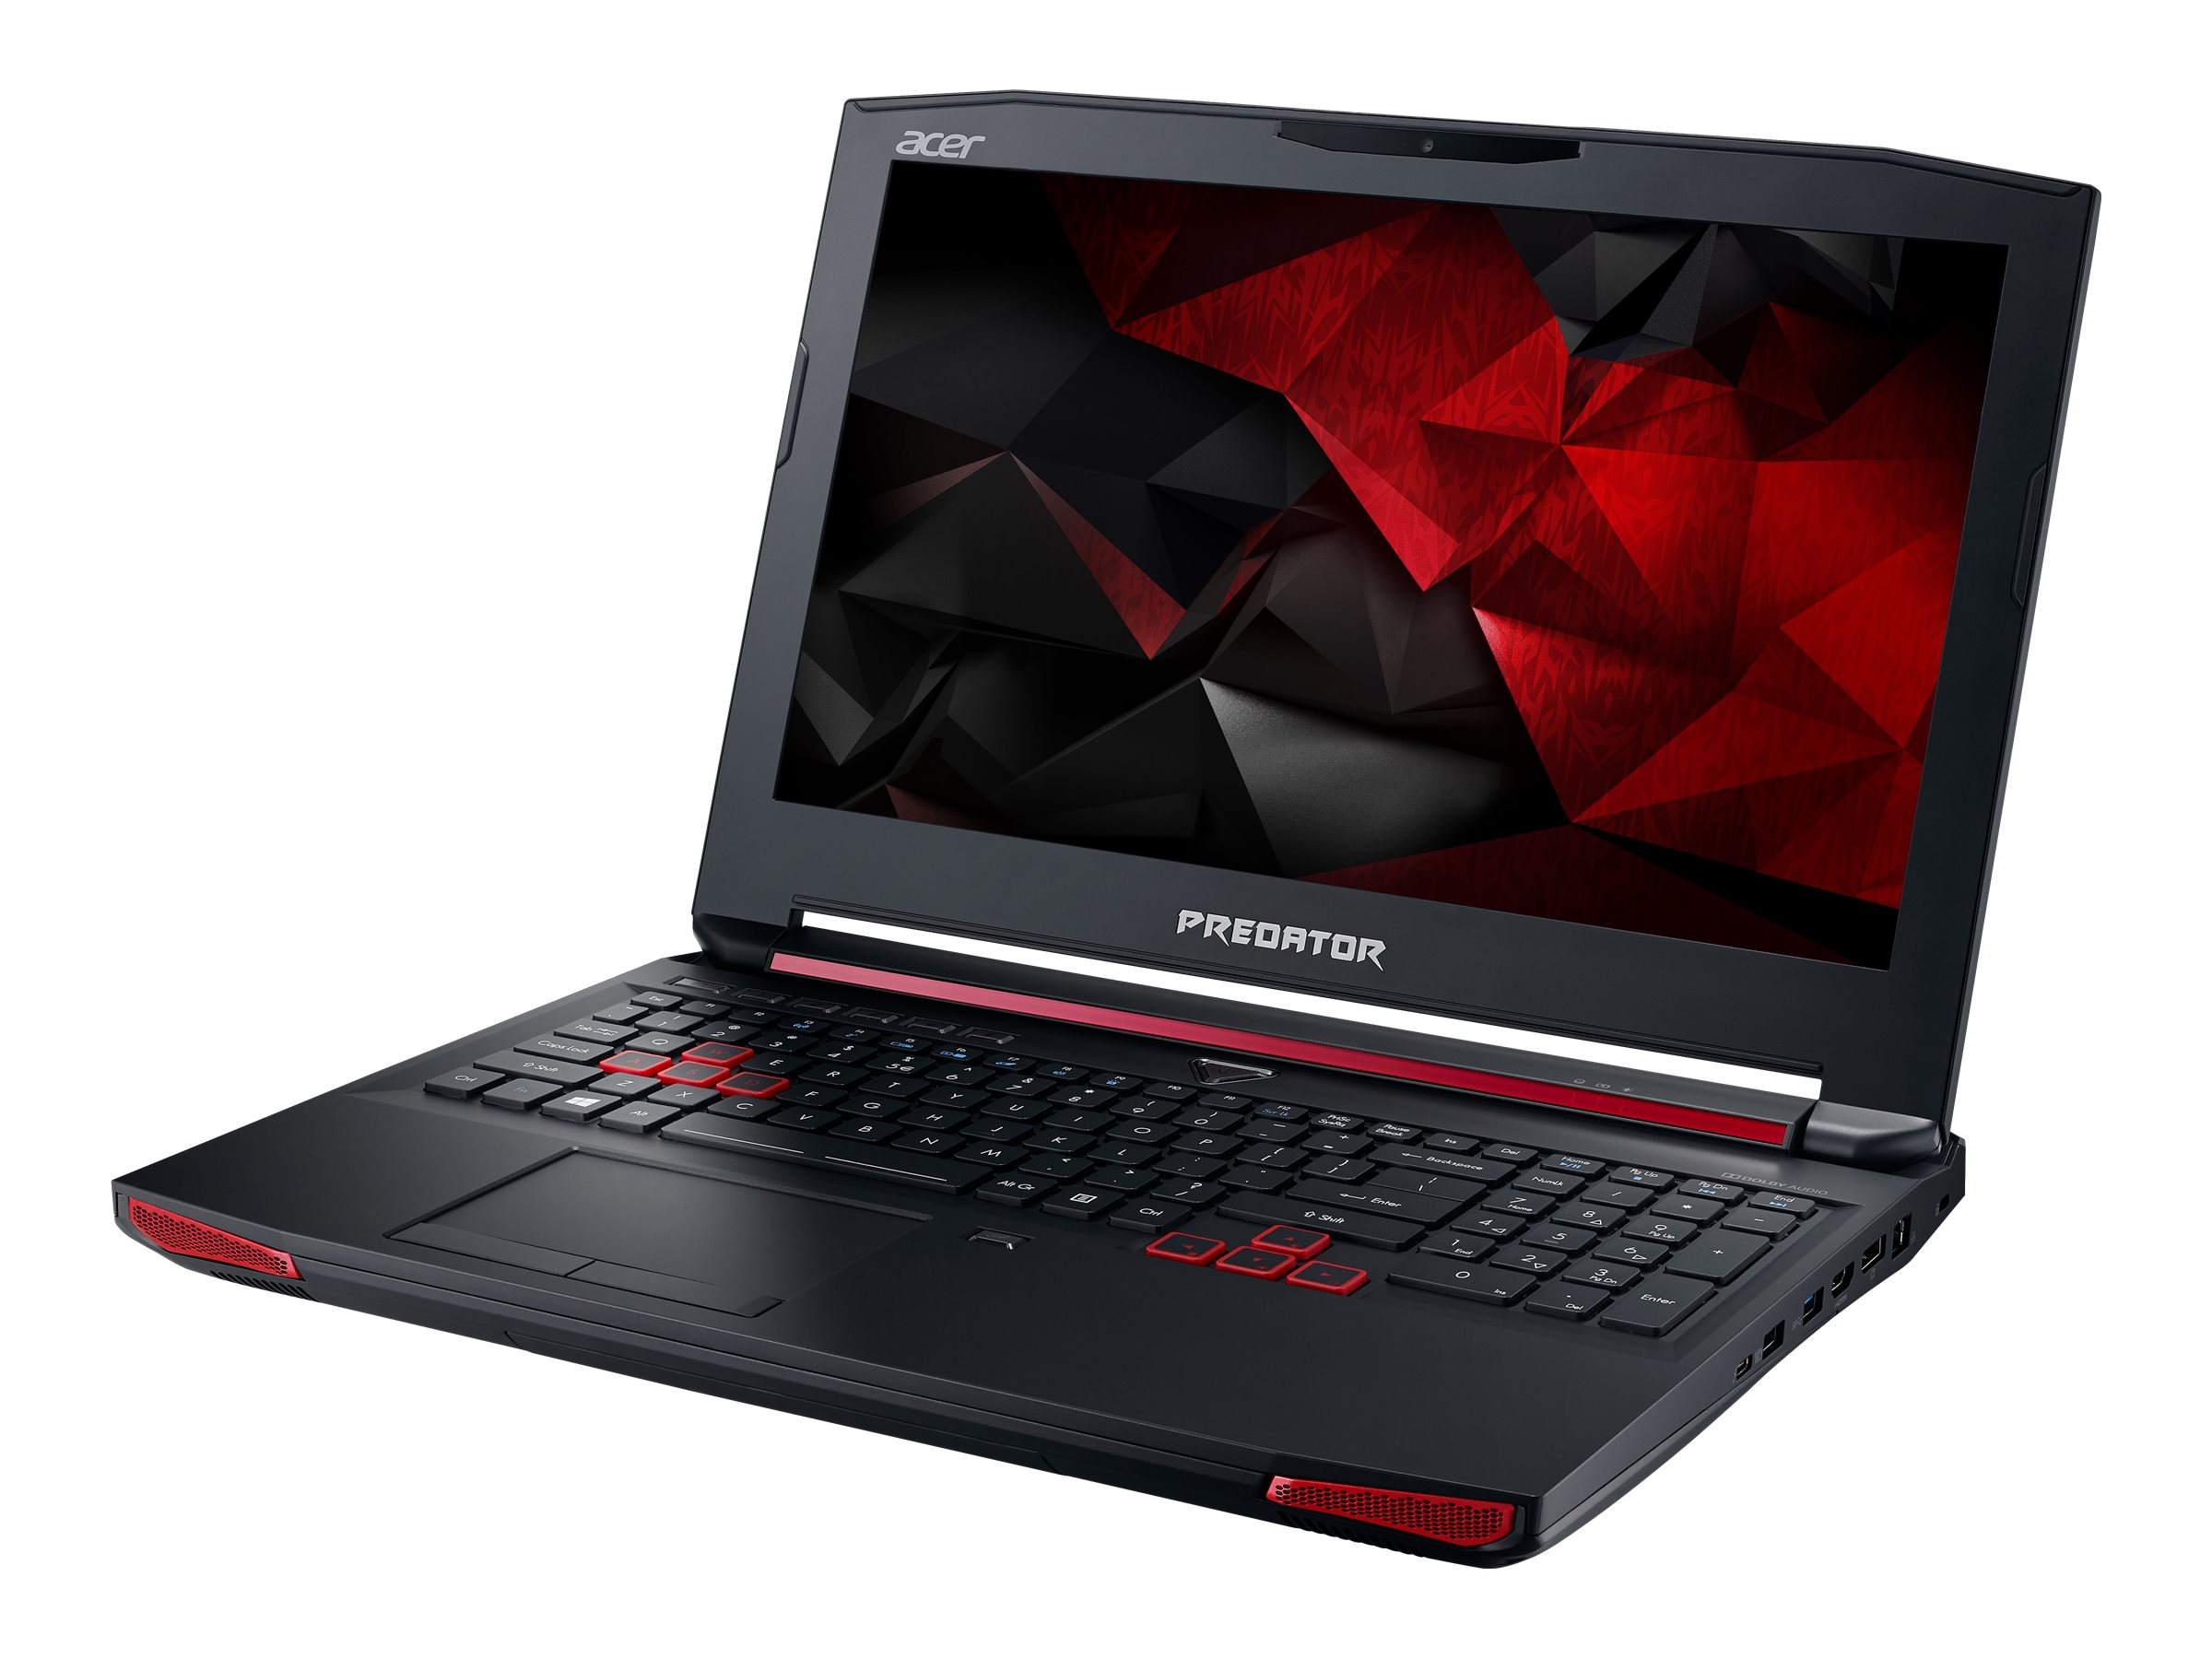 Acer Notebook PC Core Core i7-6700HQ 16GB 256GB PCIe 15.6, NX.Q05AA.002, 31905267, Notebooks